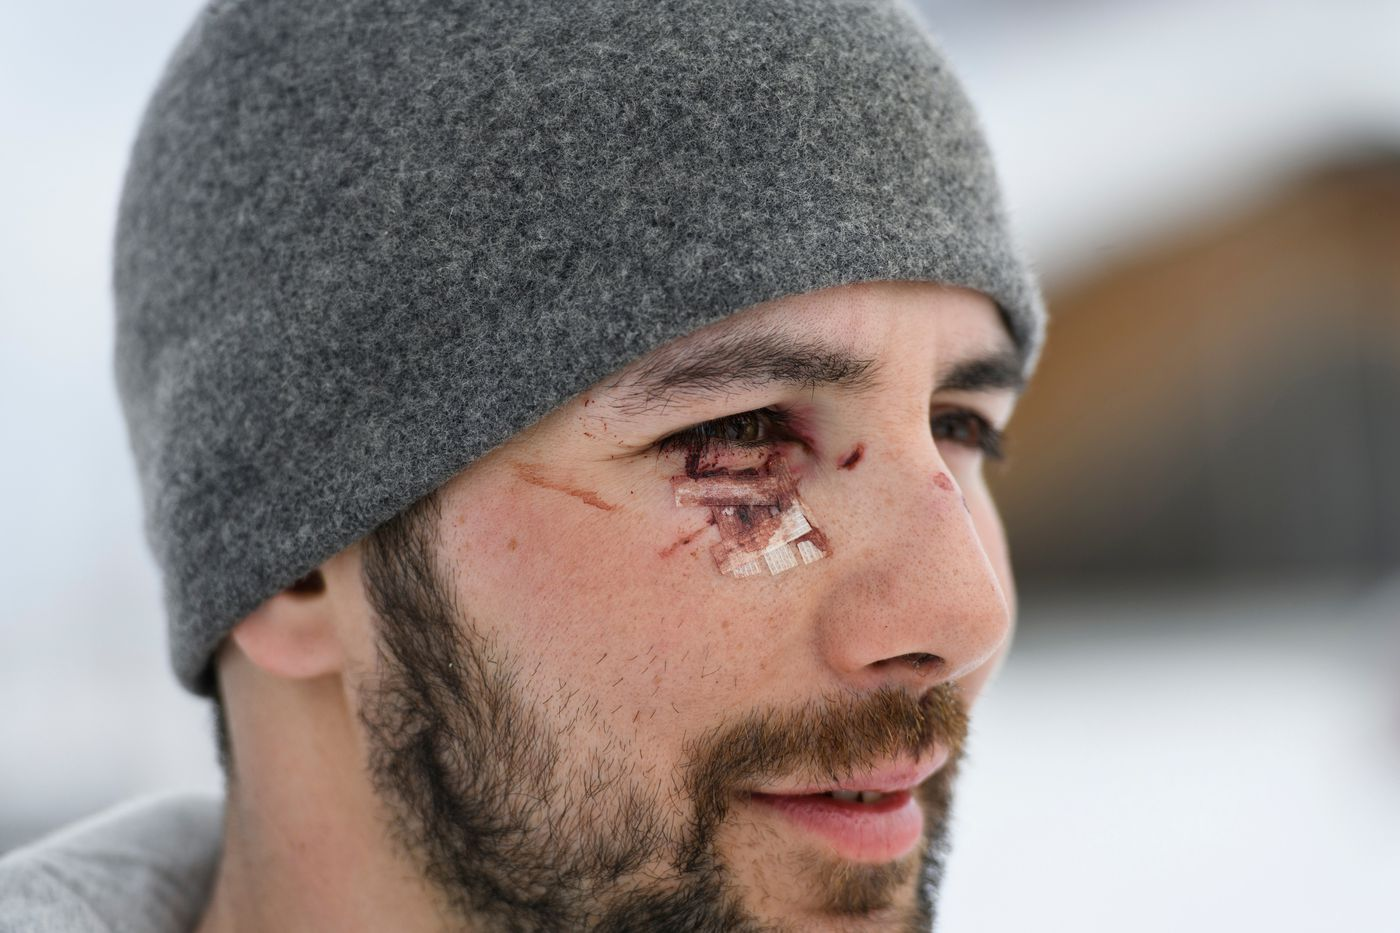 Aniak musher Richie Diehl cut his eye after his sled hit a tree before he reached Nikolai. He was one of several who teams took the mandatory 24-hour rest in Takotna during the Iditarod Trail Sled Dog Race on March 6. (Marc Lester / ADN)